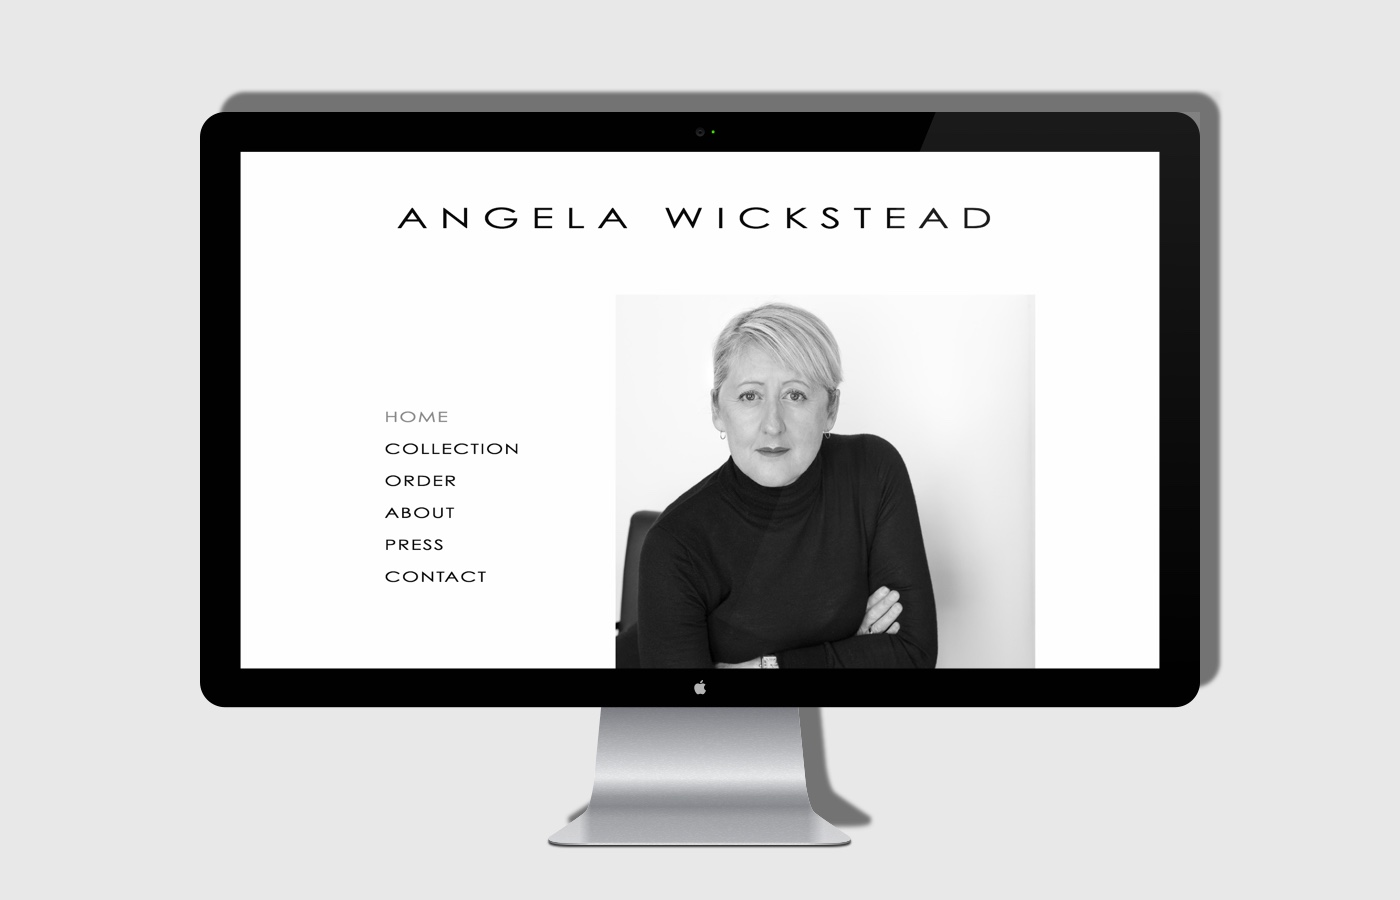 Angela Wickstead preview